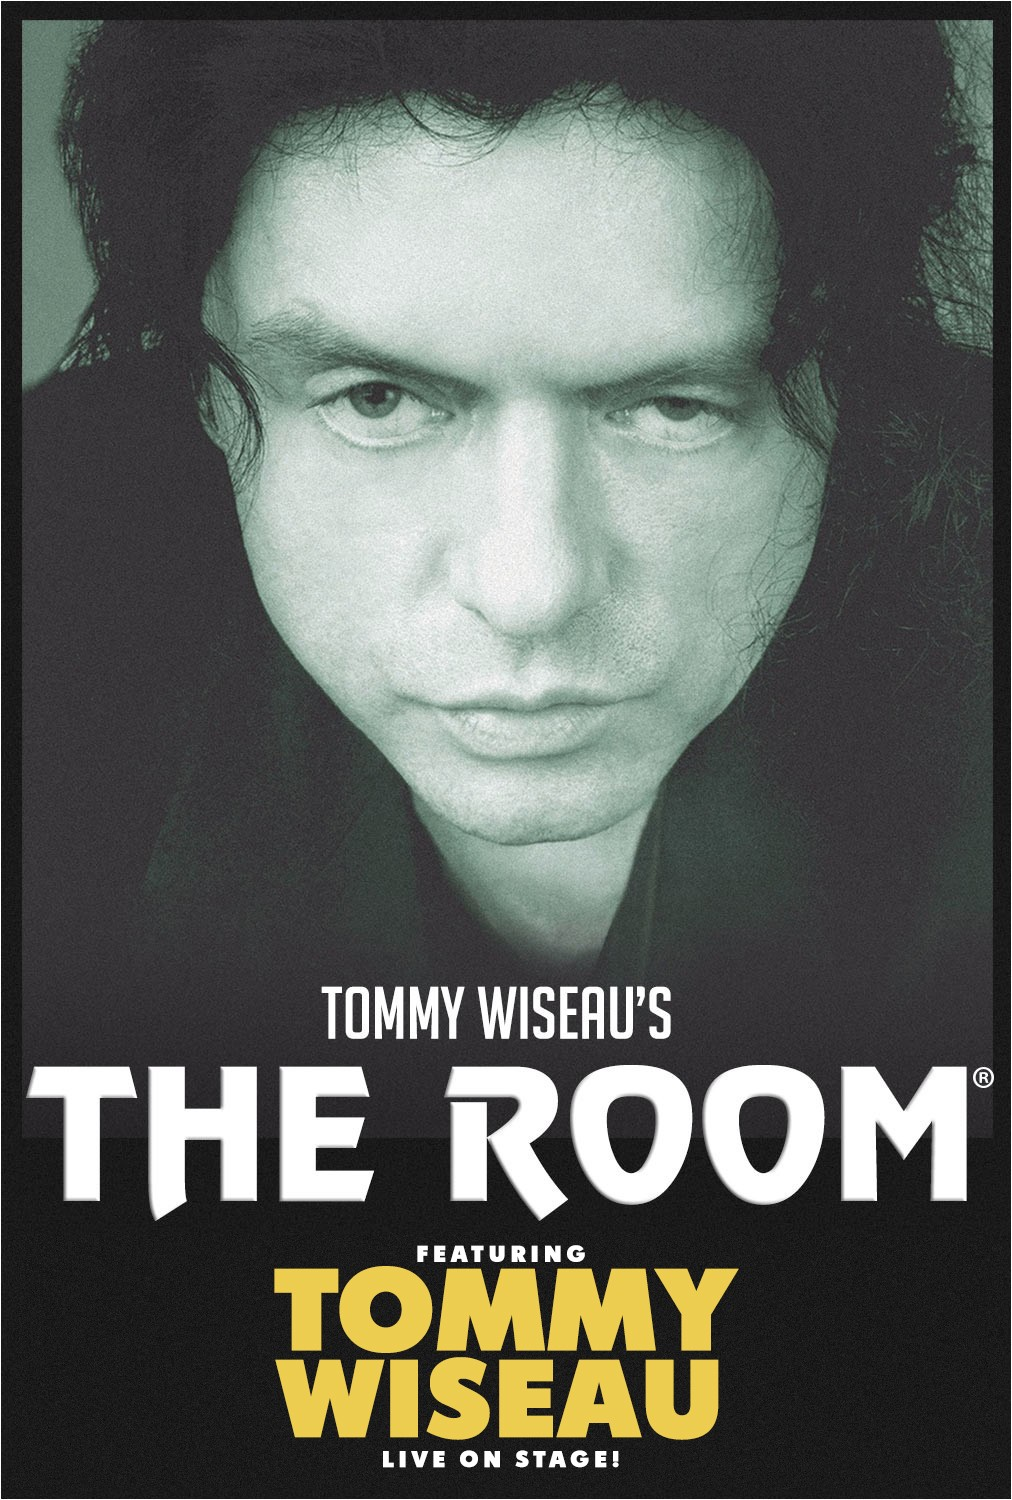 THE ROOM w/ TOMMY WISEAU live on stage